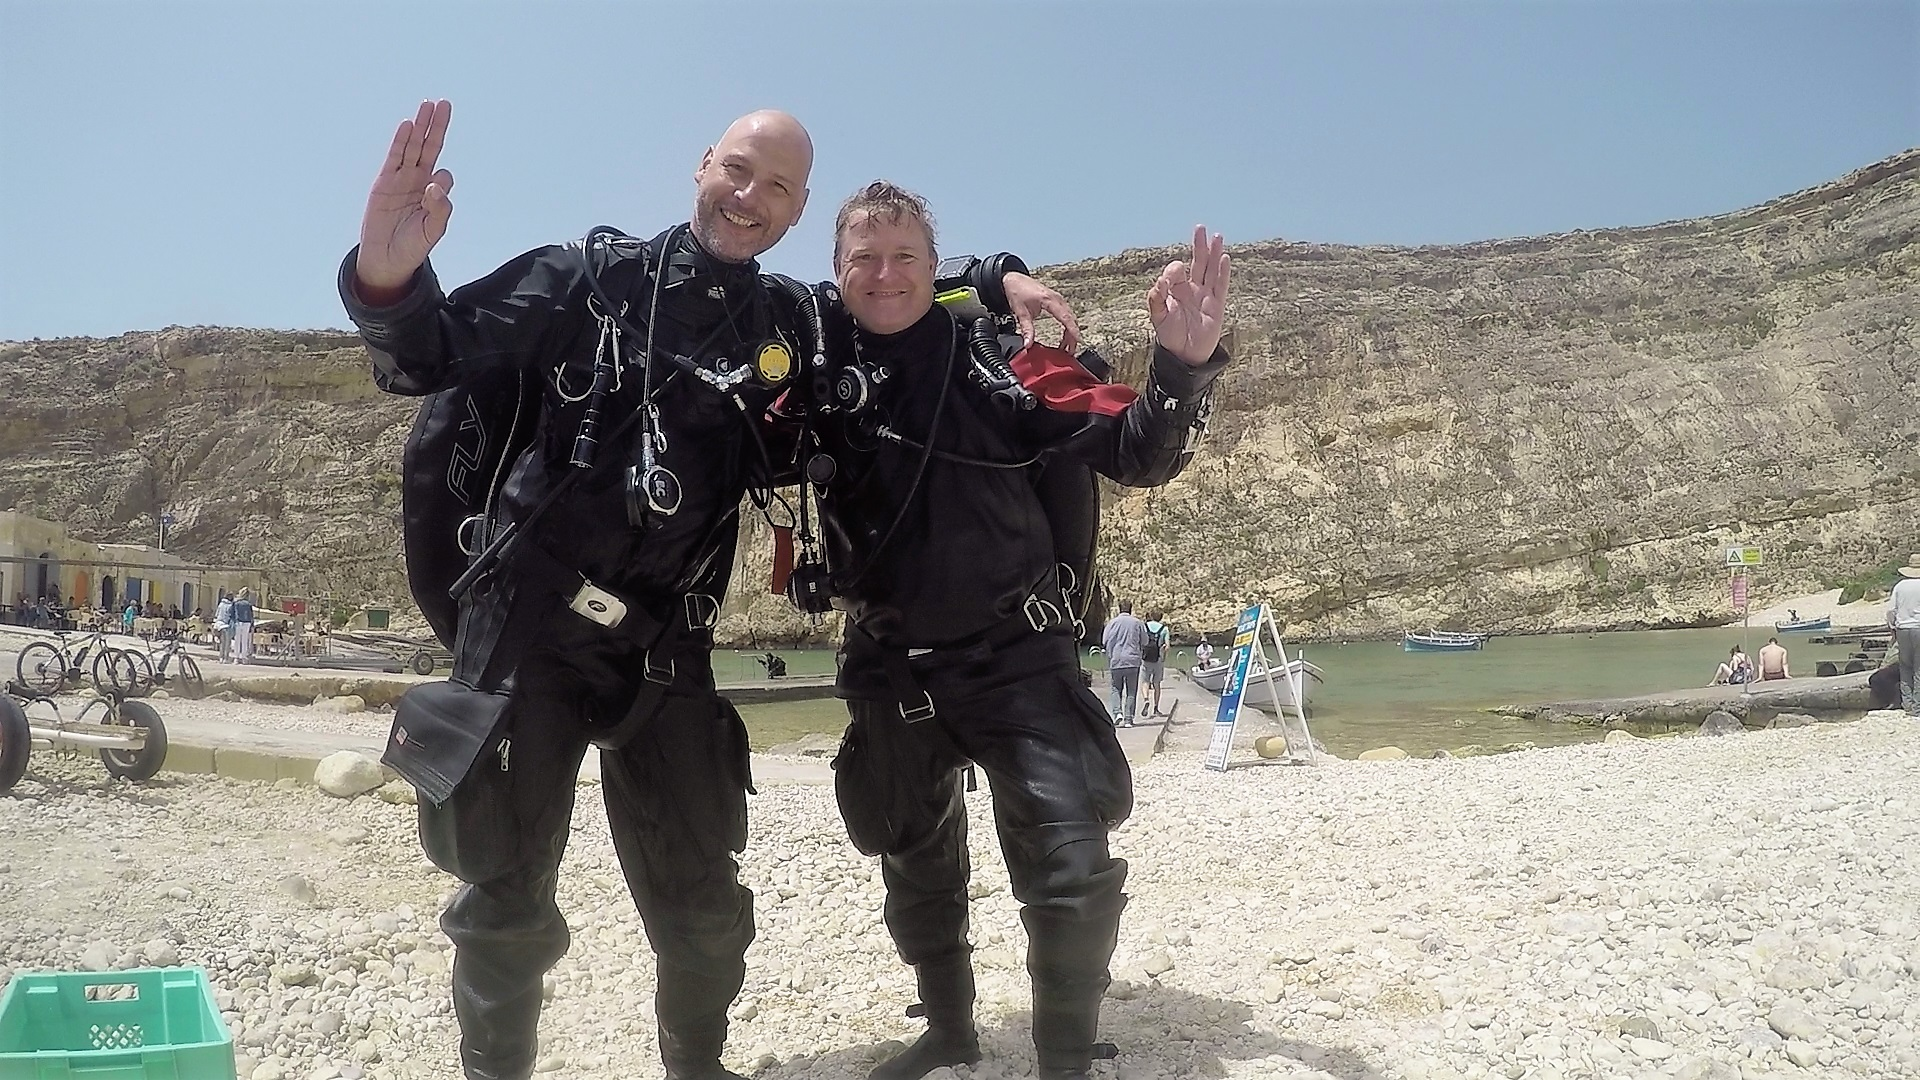 PADI Tec 50 divers giving a big OK after completing the course